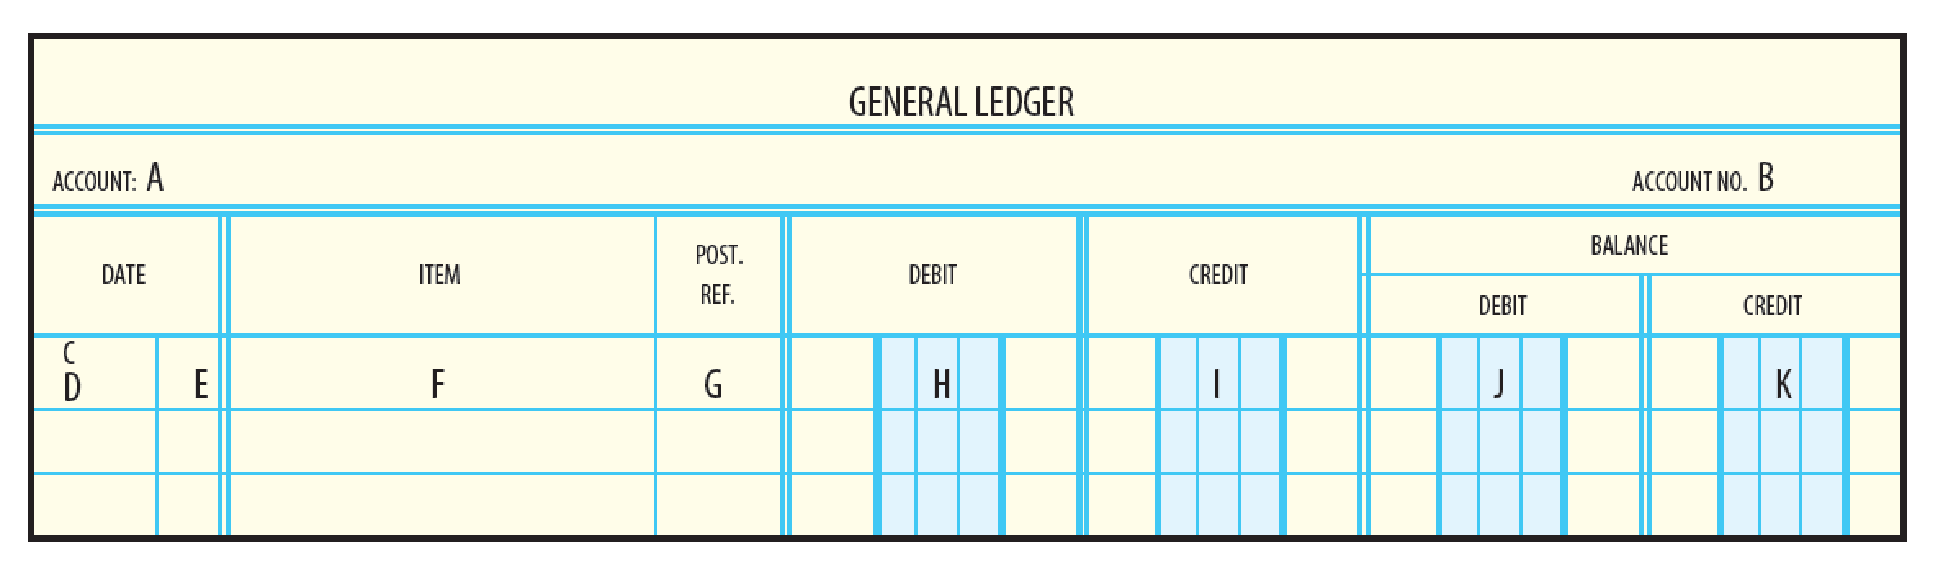 Chapter 4, Problem 3CE, Indicate the information that would be entered for each of the lettered items in the general ledger